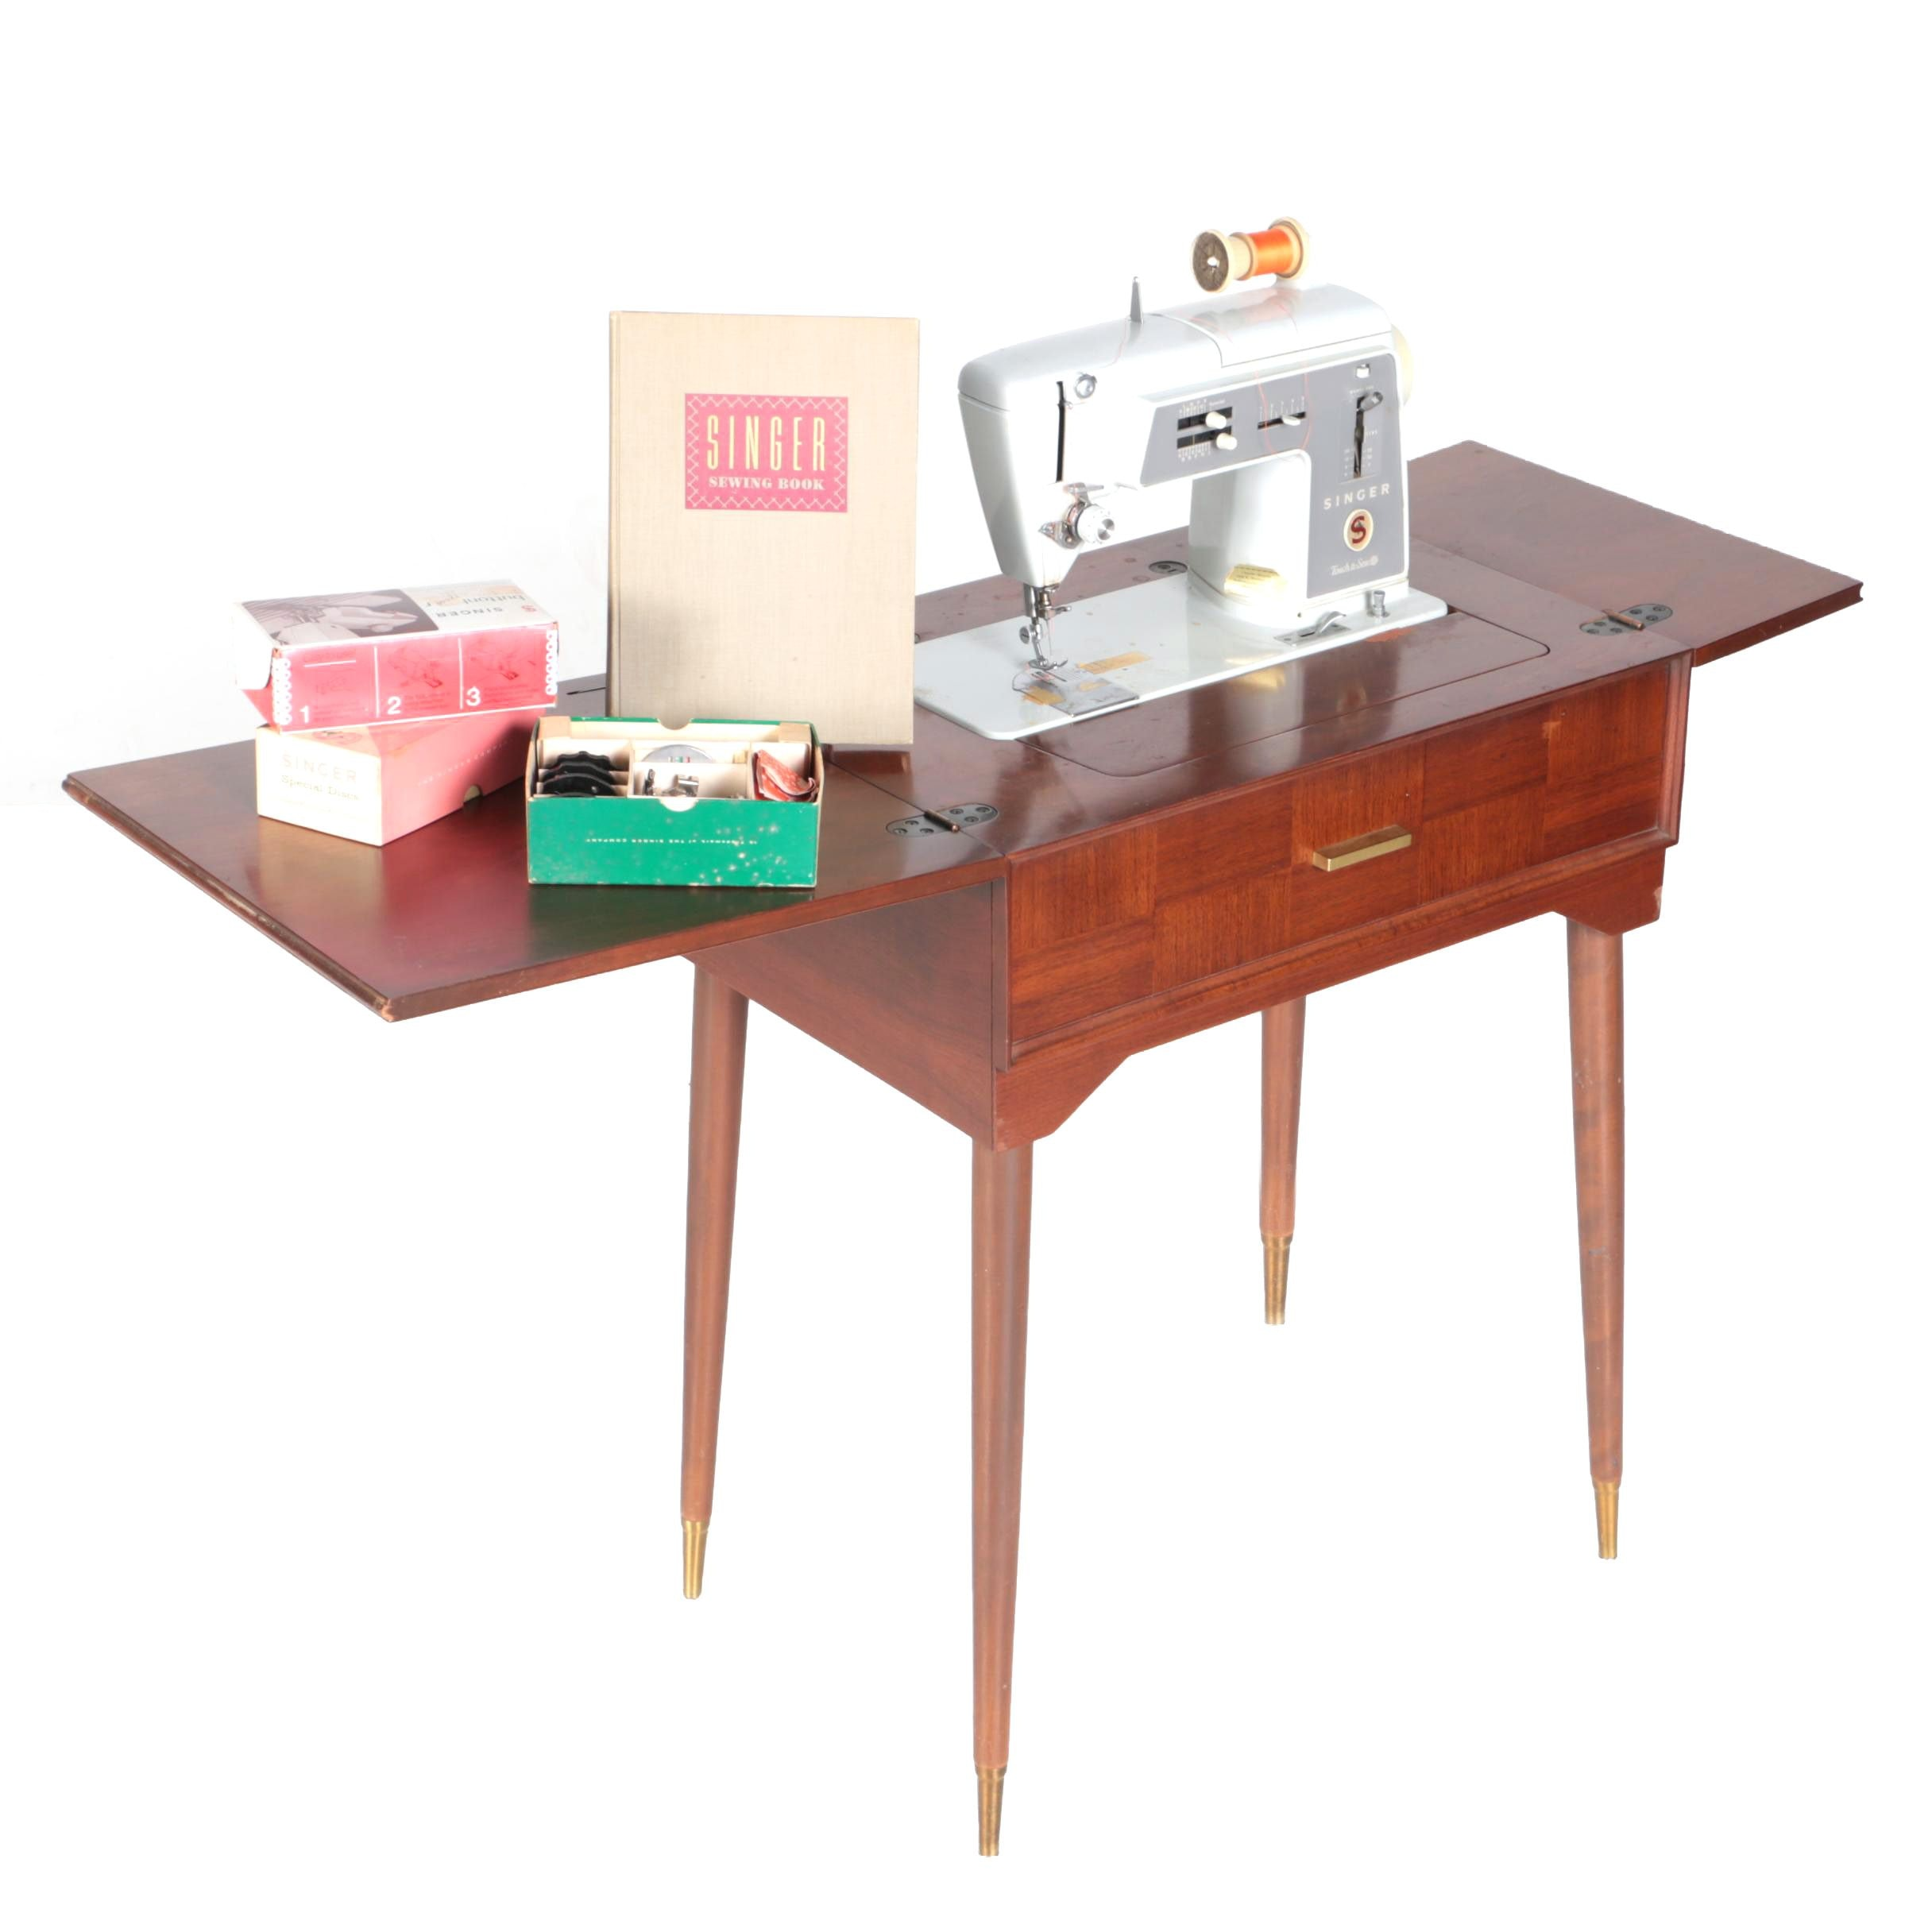 "Singer ""Touch & Sew"" Sewing Machine and Mid Century Modern Table"